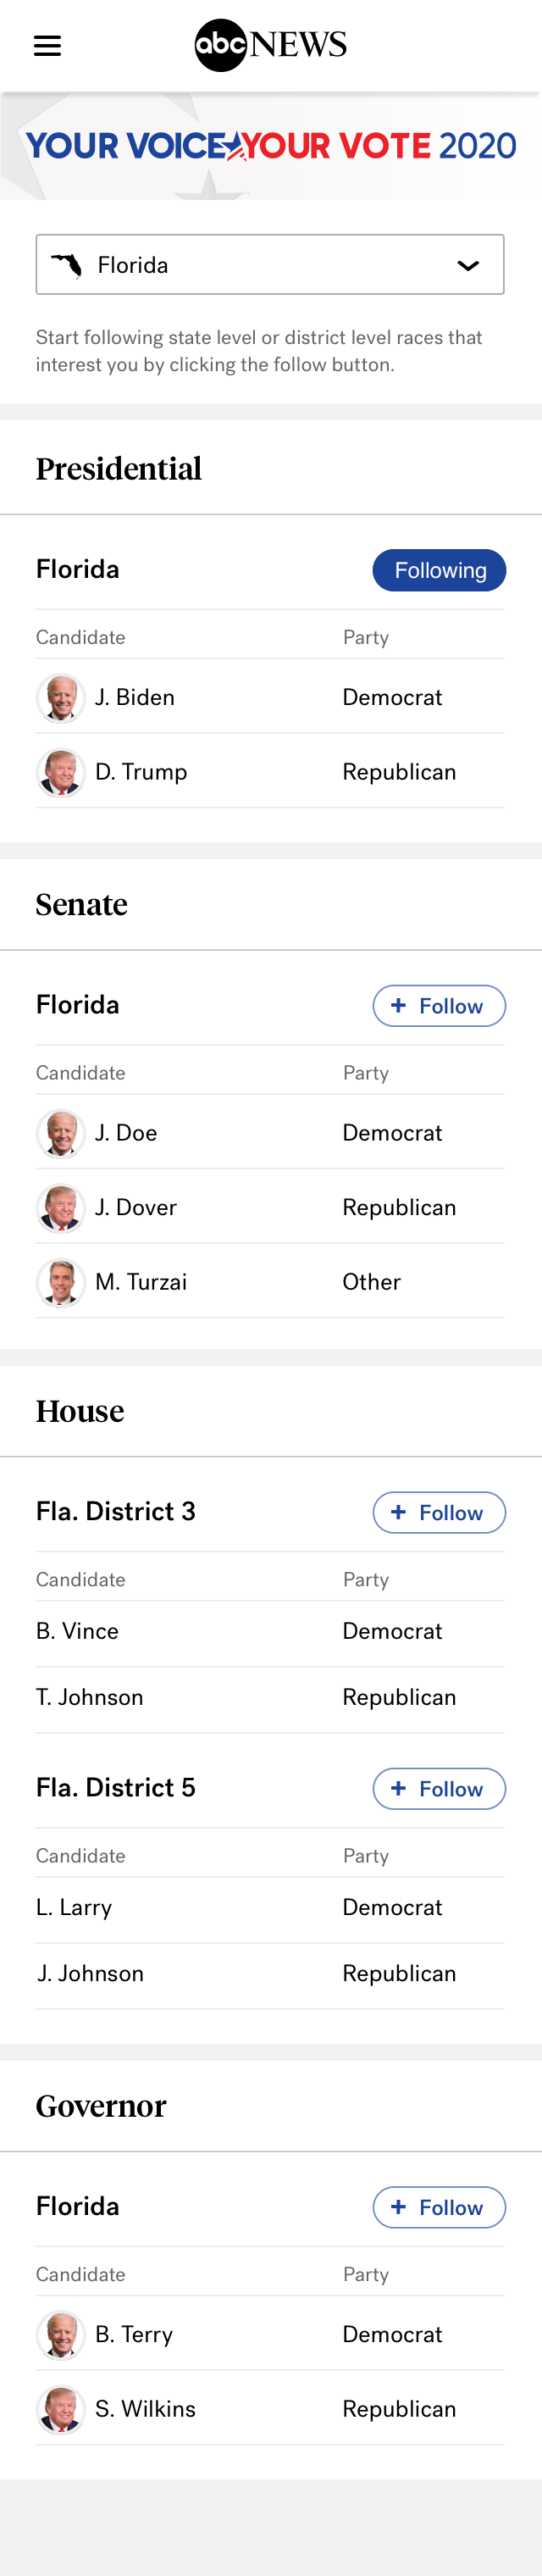 Explicit Follow – State Races (Following)